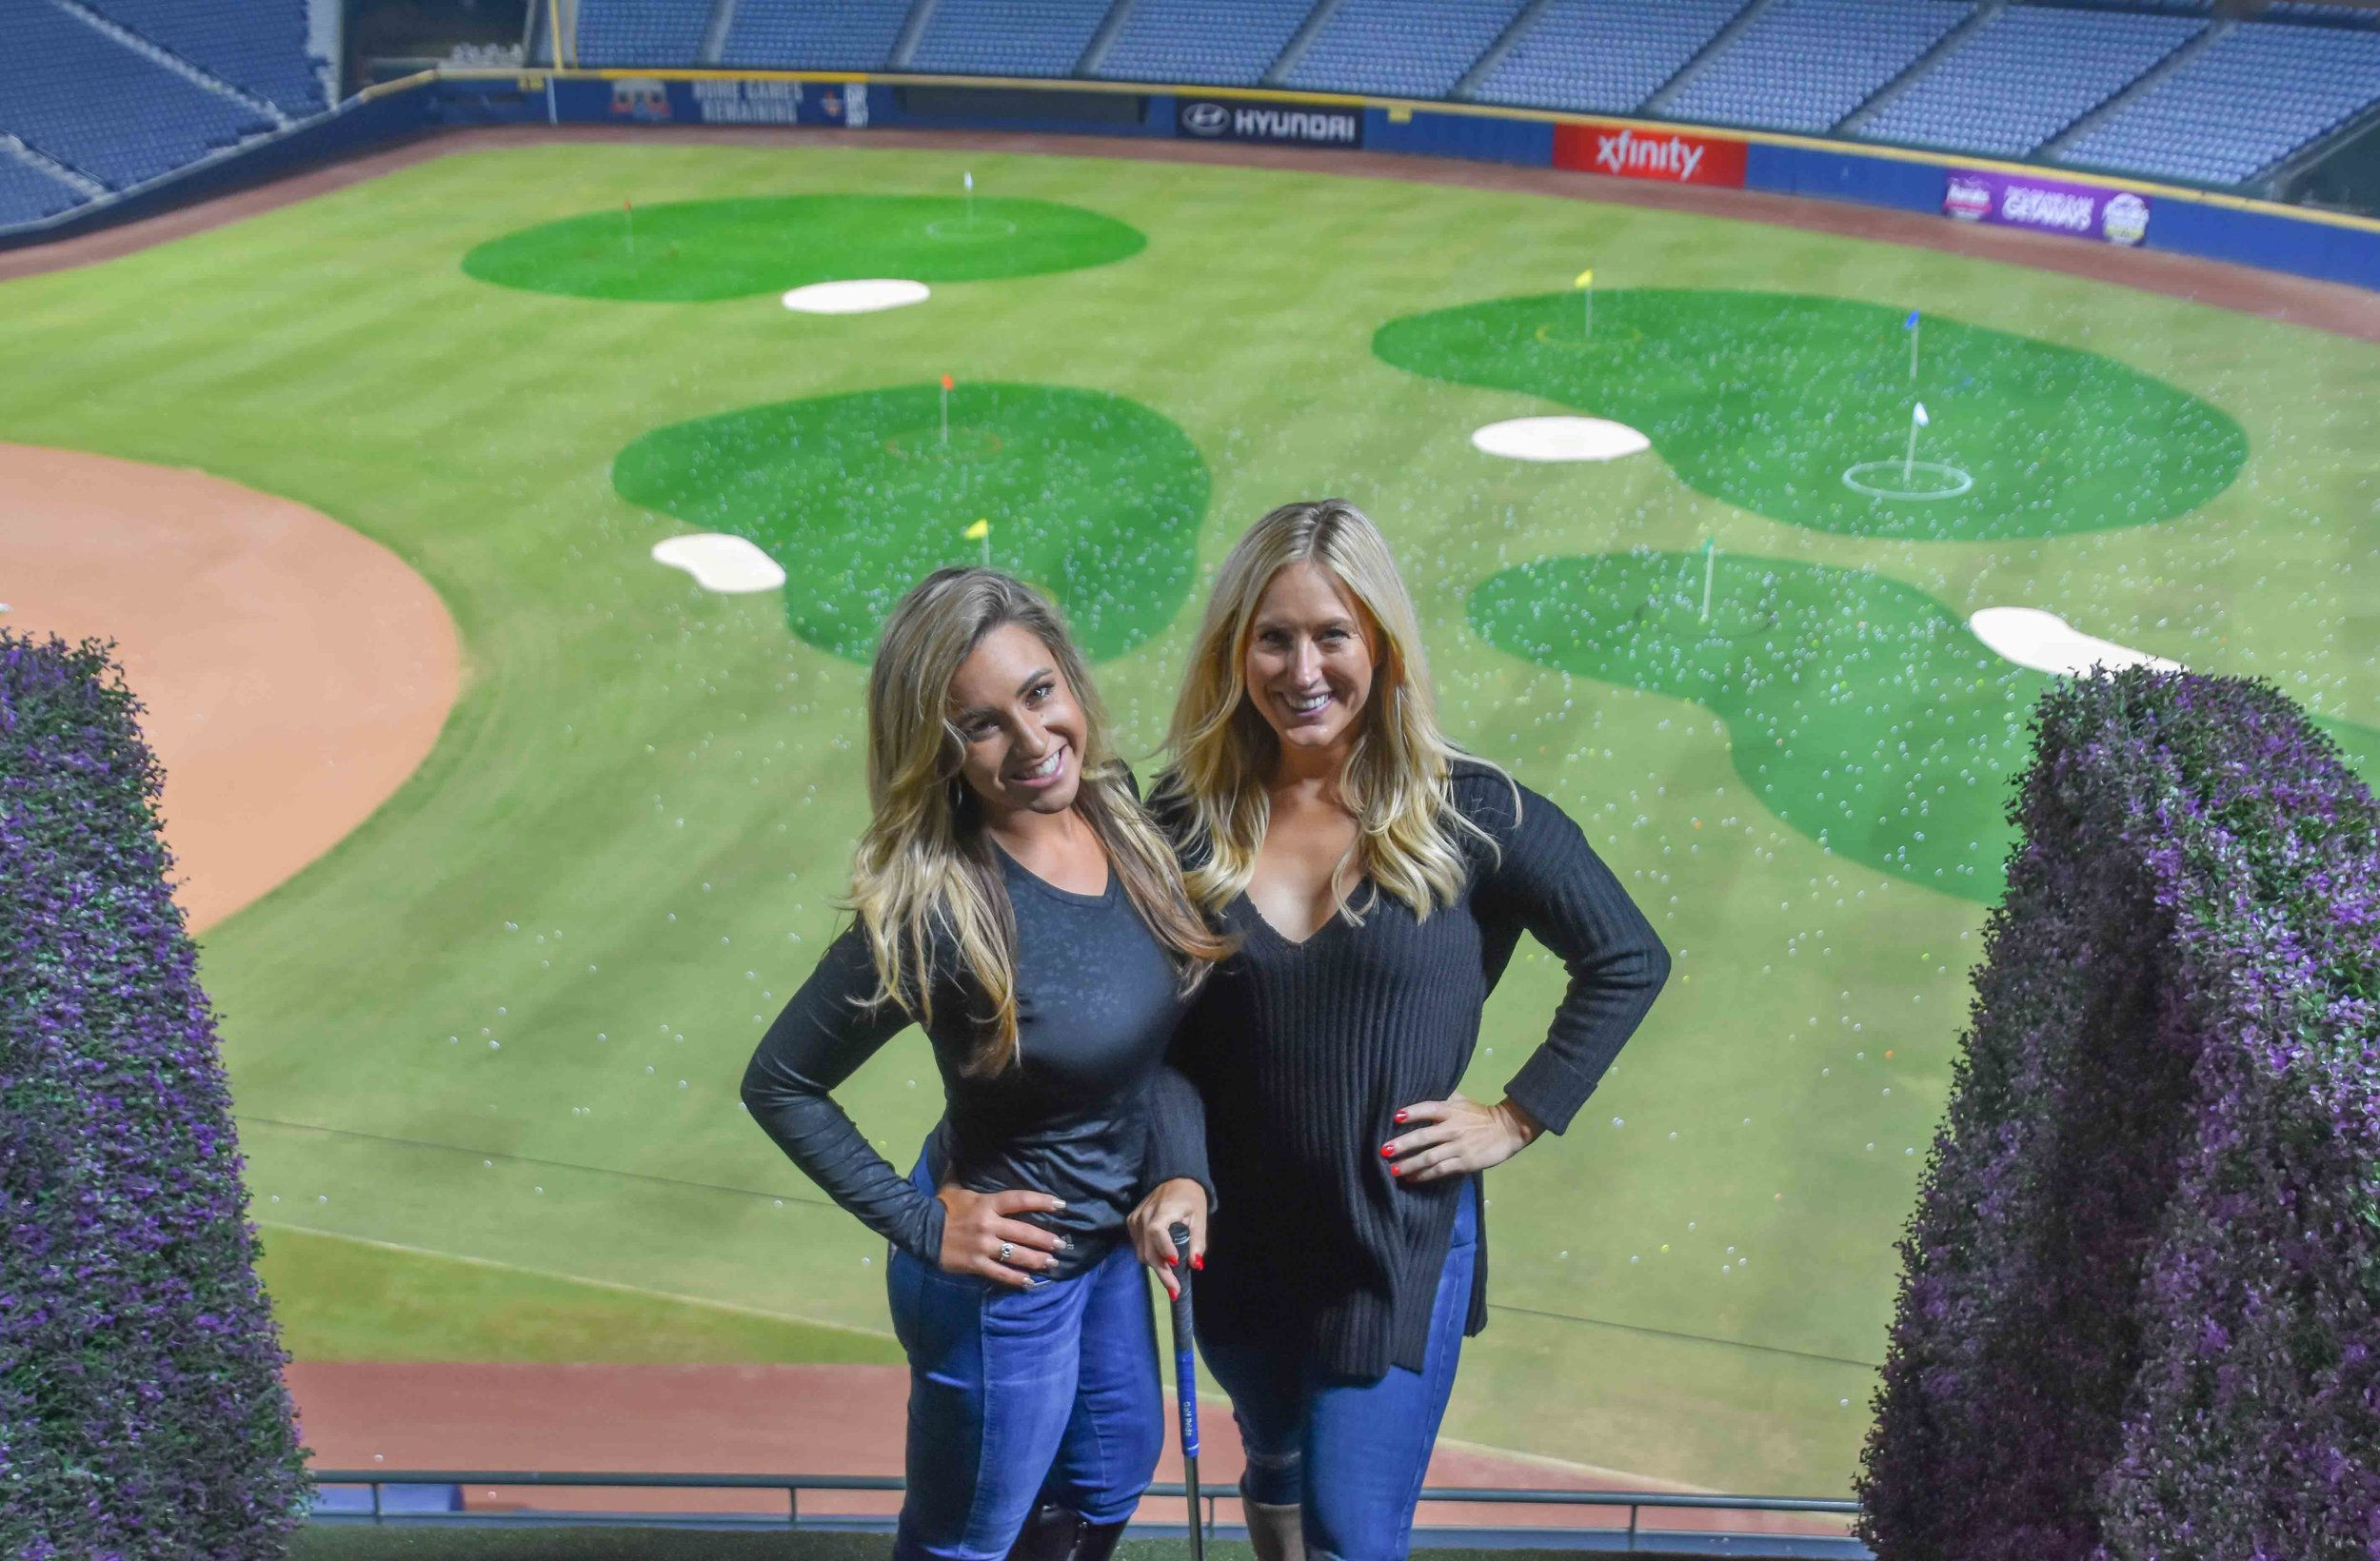 Chelsea Pezzola  and  Fiamma Felitch  do some Turner Field golf modeling.